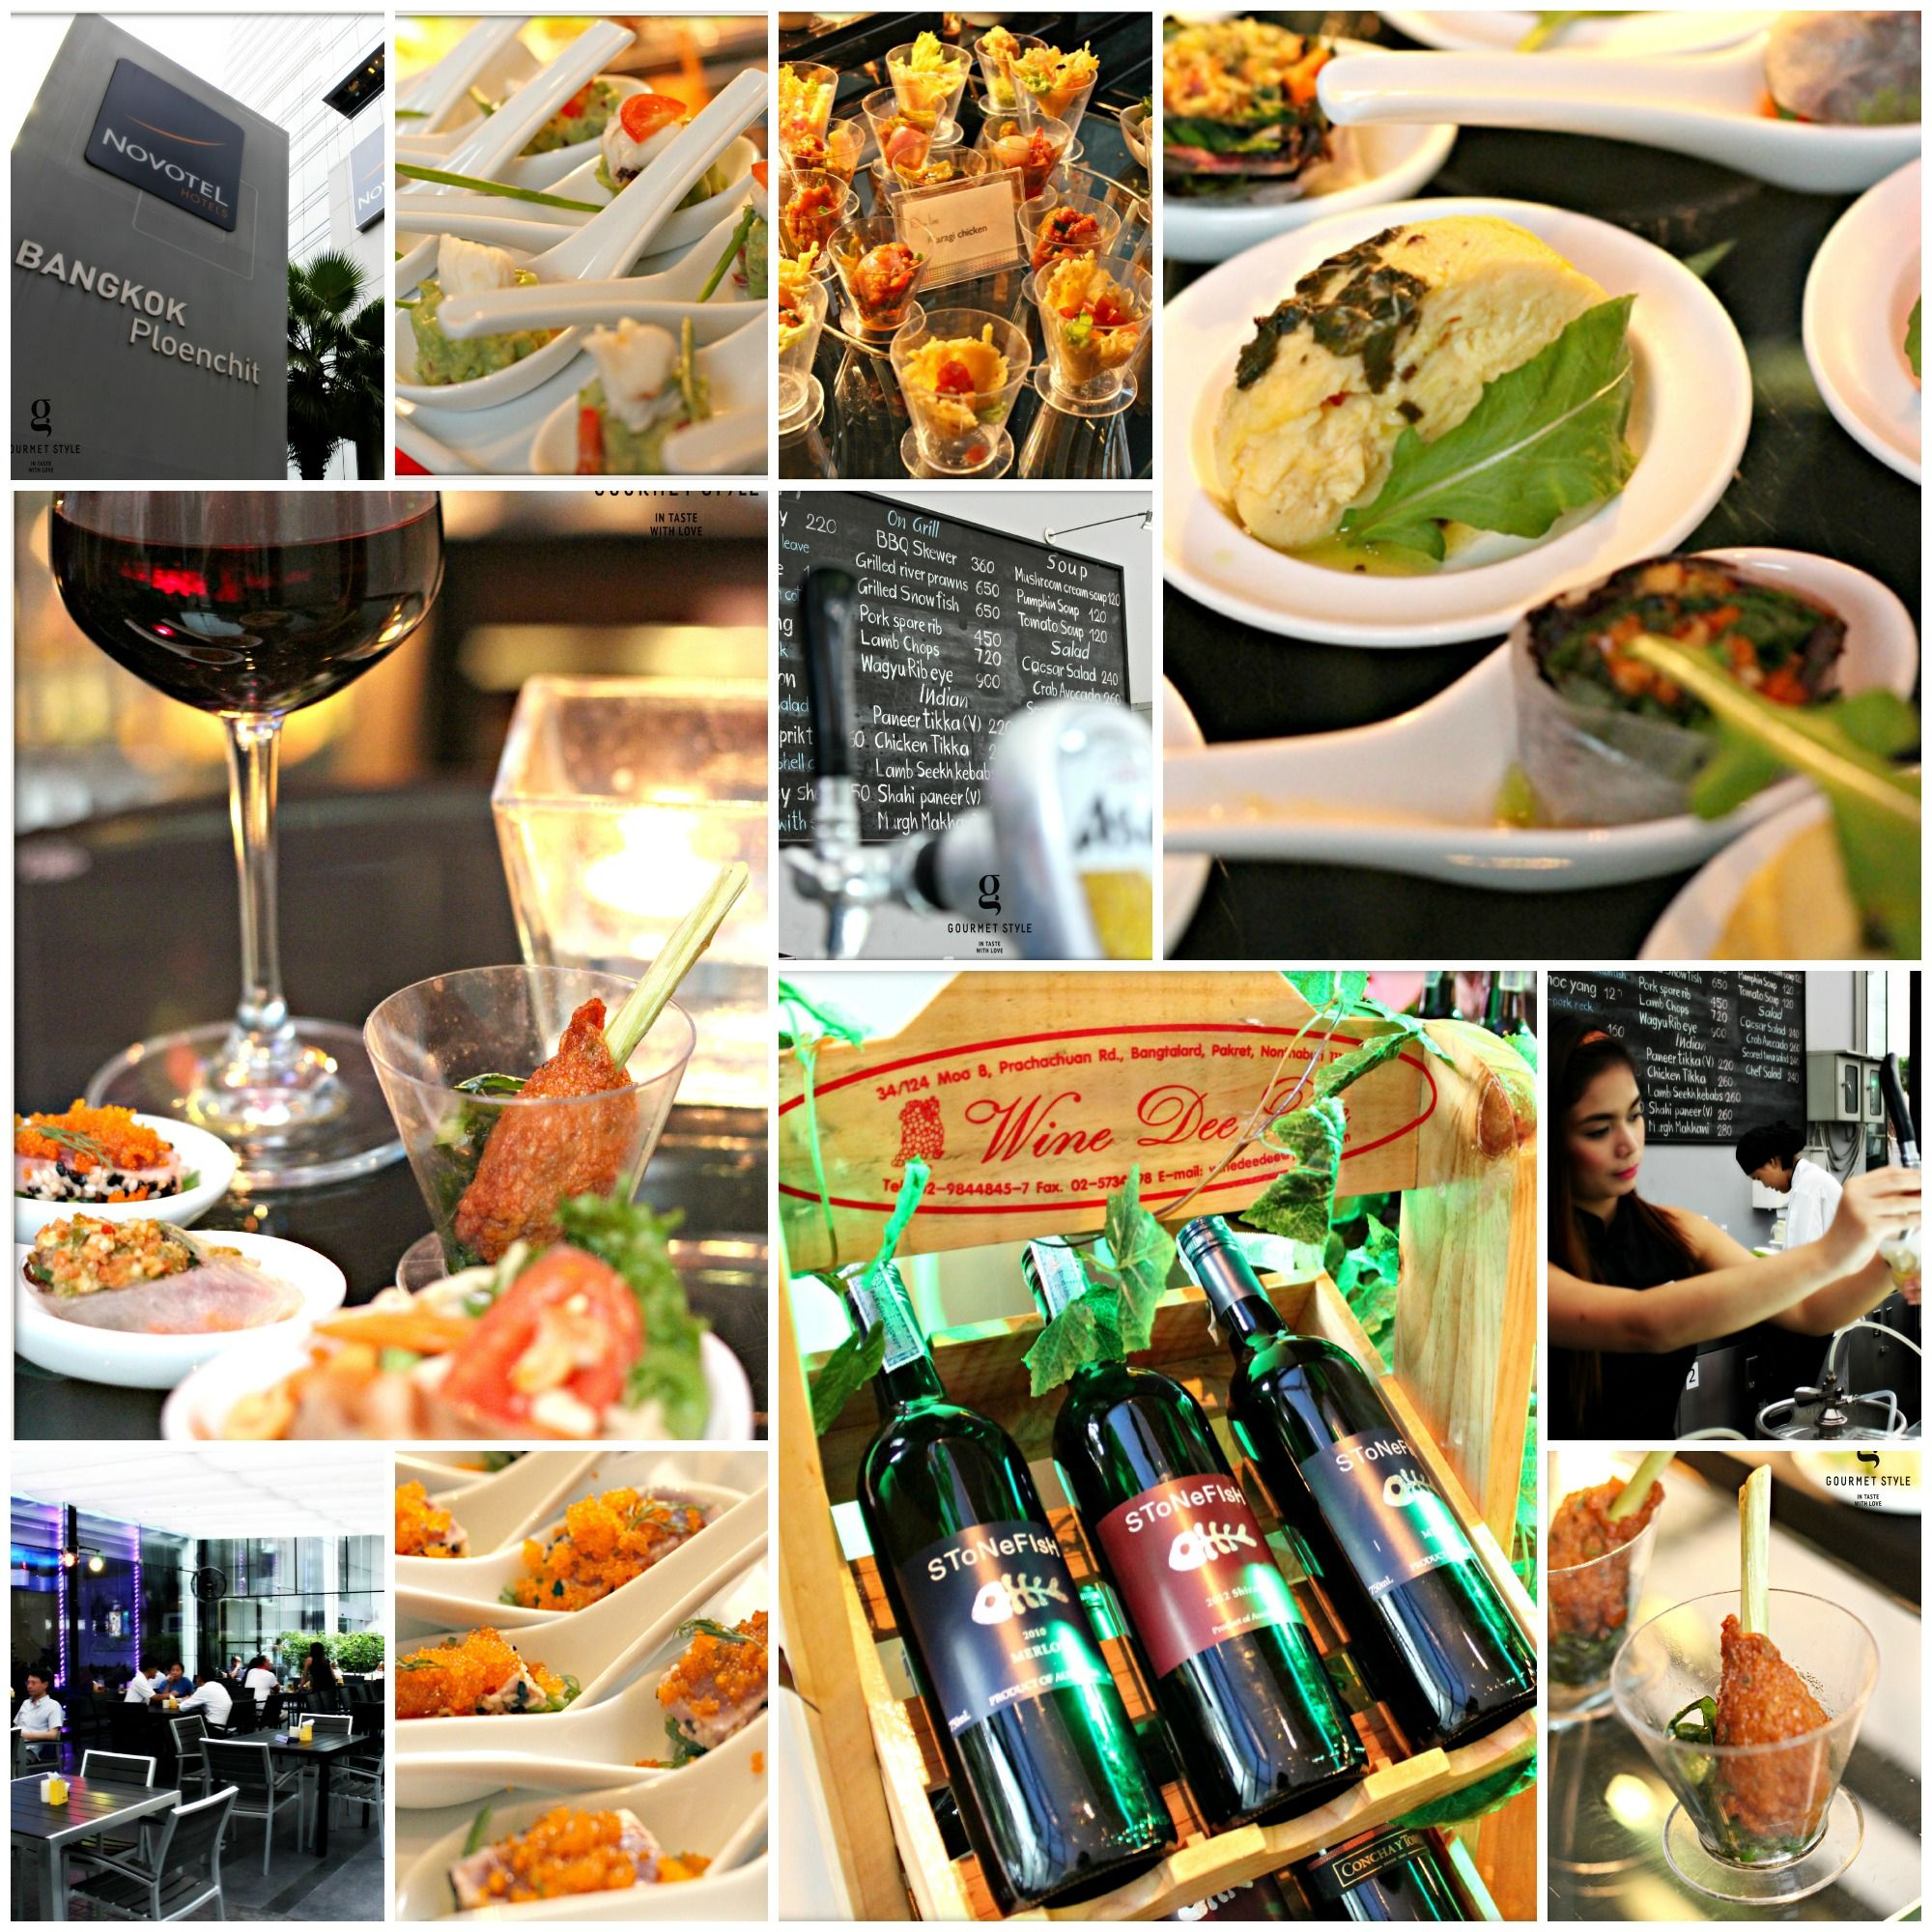 Drop by Dee Lounge at Novotel Bangkok Pleonchit Hotel for their Wednesday's Wine and Jazz Night. Let their light jazz music massage your nerve, and let yourself enjoy their fine pairing of wine and complimentary tapas.  Jazz up all your Wednesday nights in May 2014 with nice wine and food!